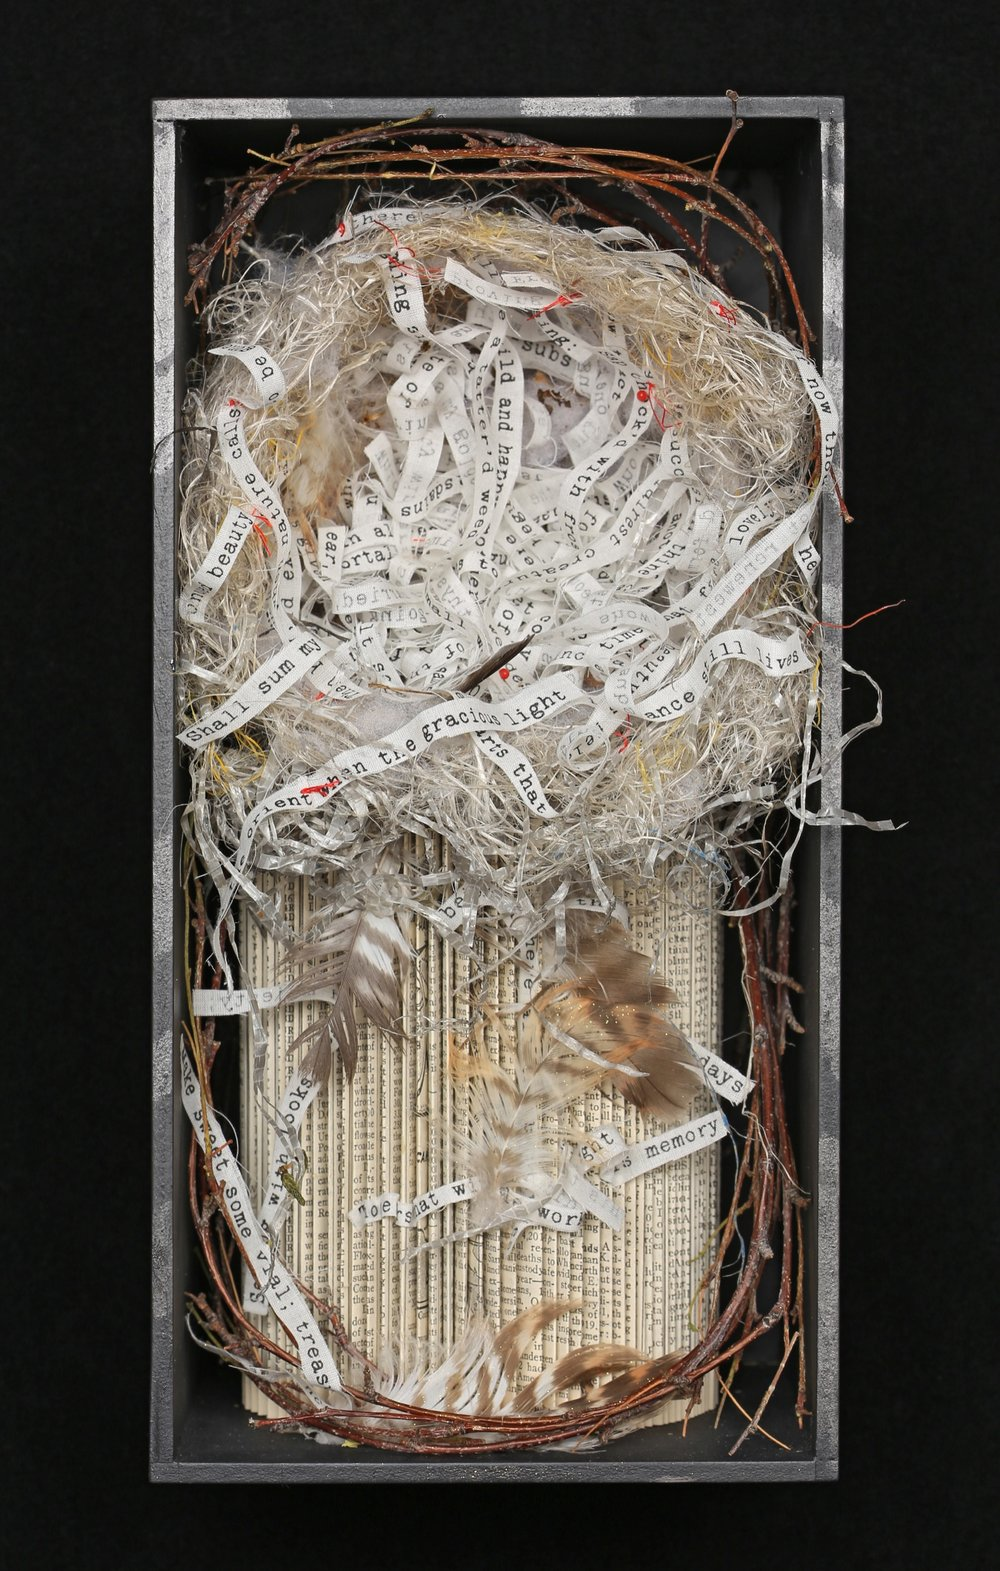 32_Jody Plant_Last Year's Song_mixed media sculpture_12 x 6 x 6 in..JPG